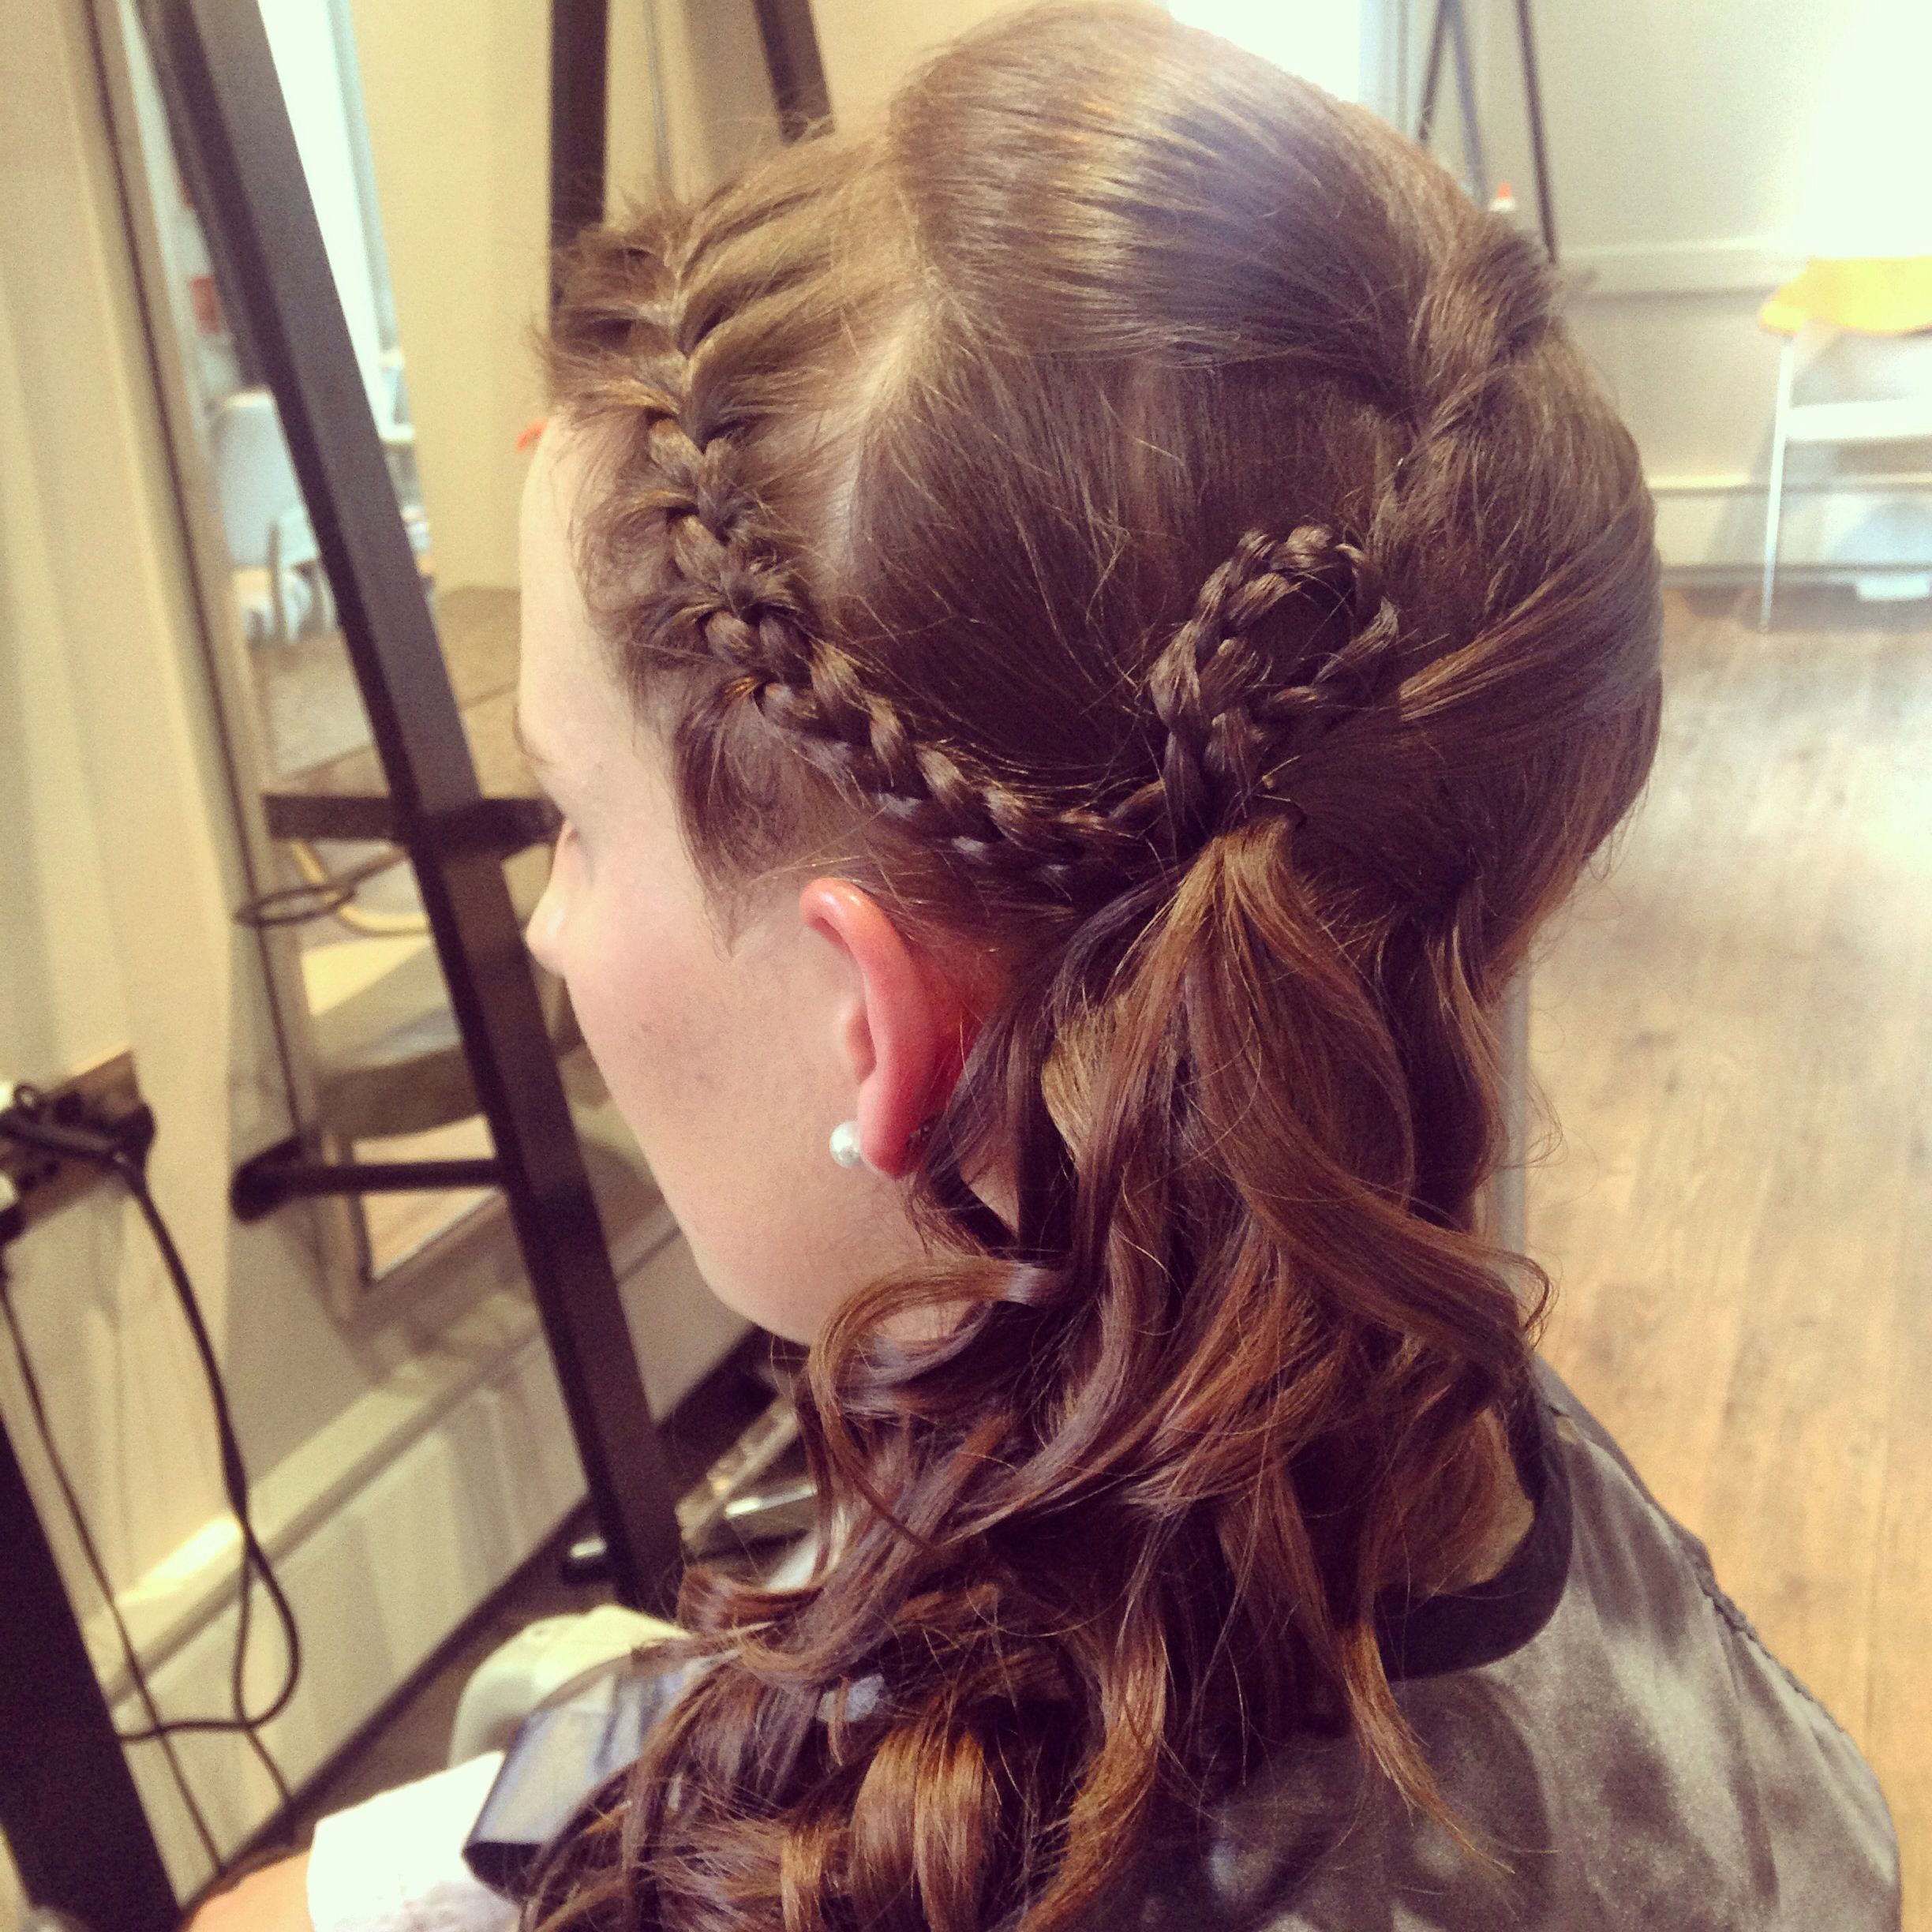 Side plait curls long hair hunt ball Hair by Kirsty